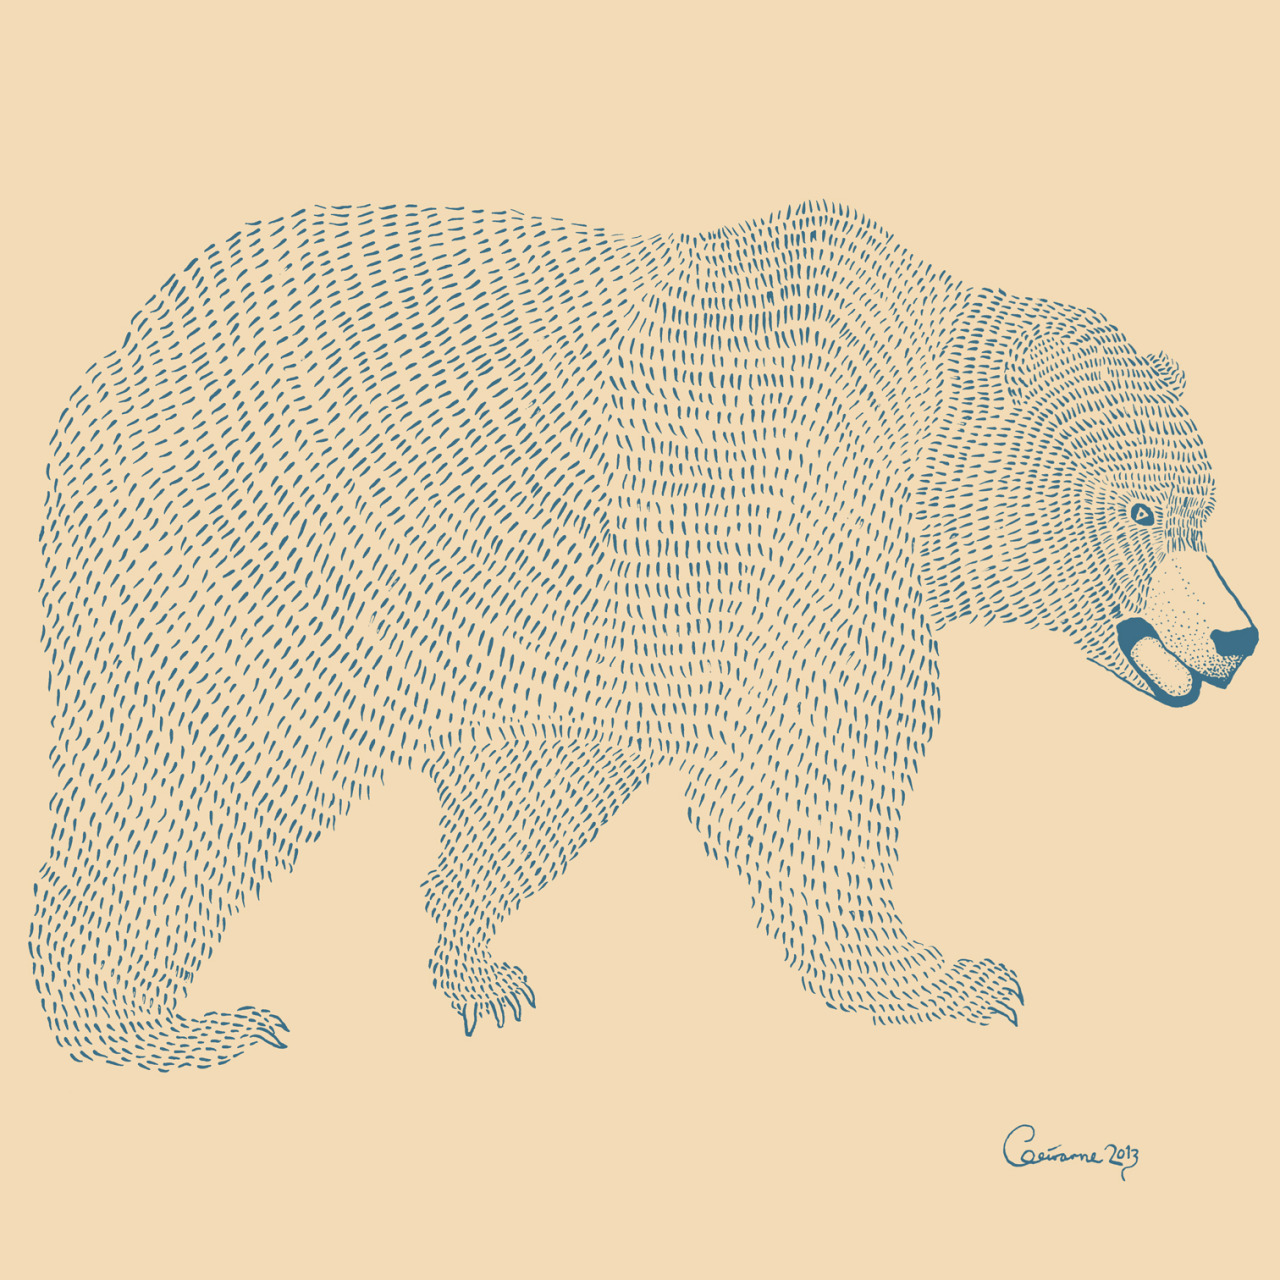 bear. drawing by geirarne/ballad of the dyeing dart frog 2013